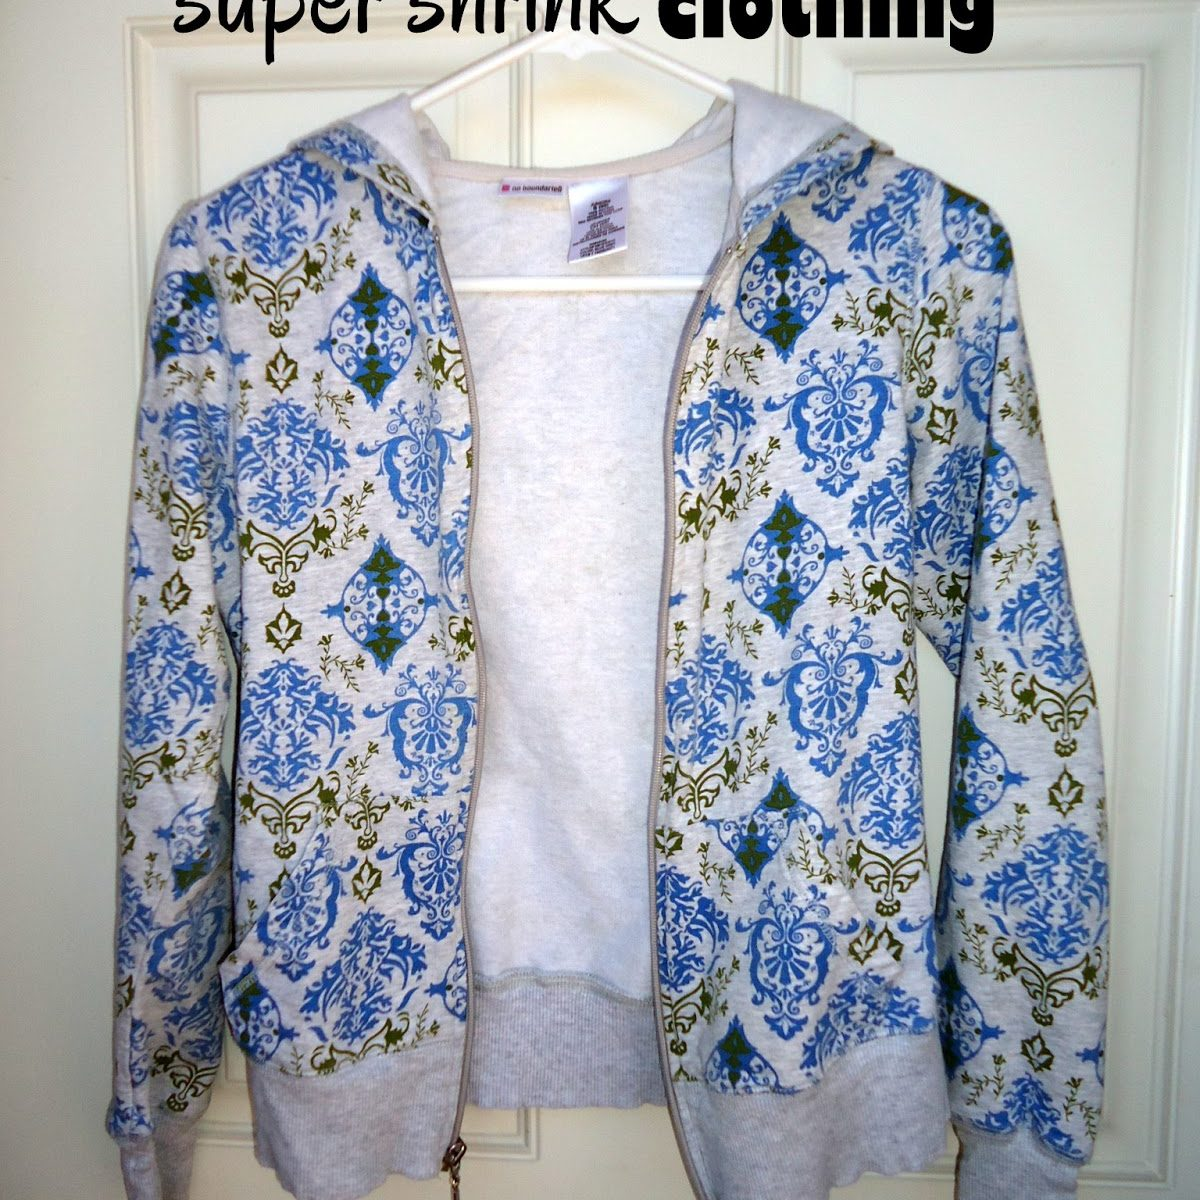 UPDATE: APRIL FOOLS!!!  How To Super-Shrink Clothing